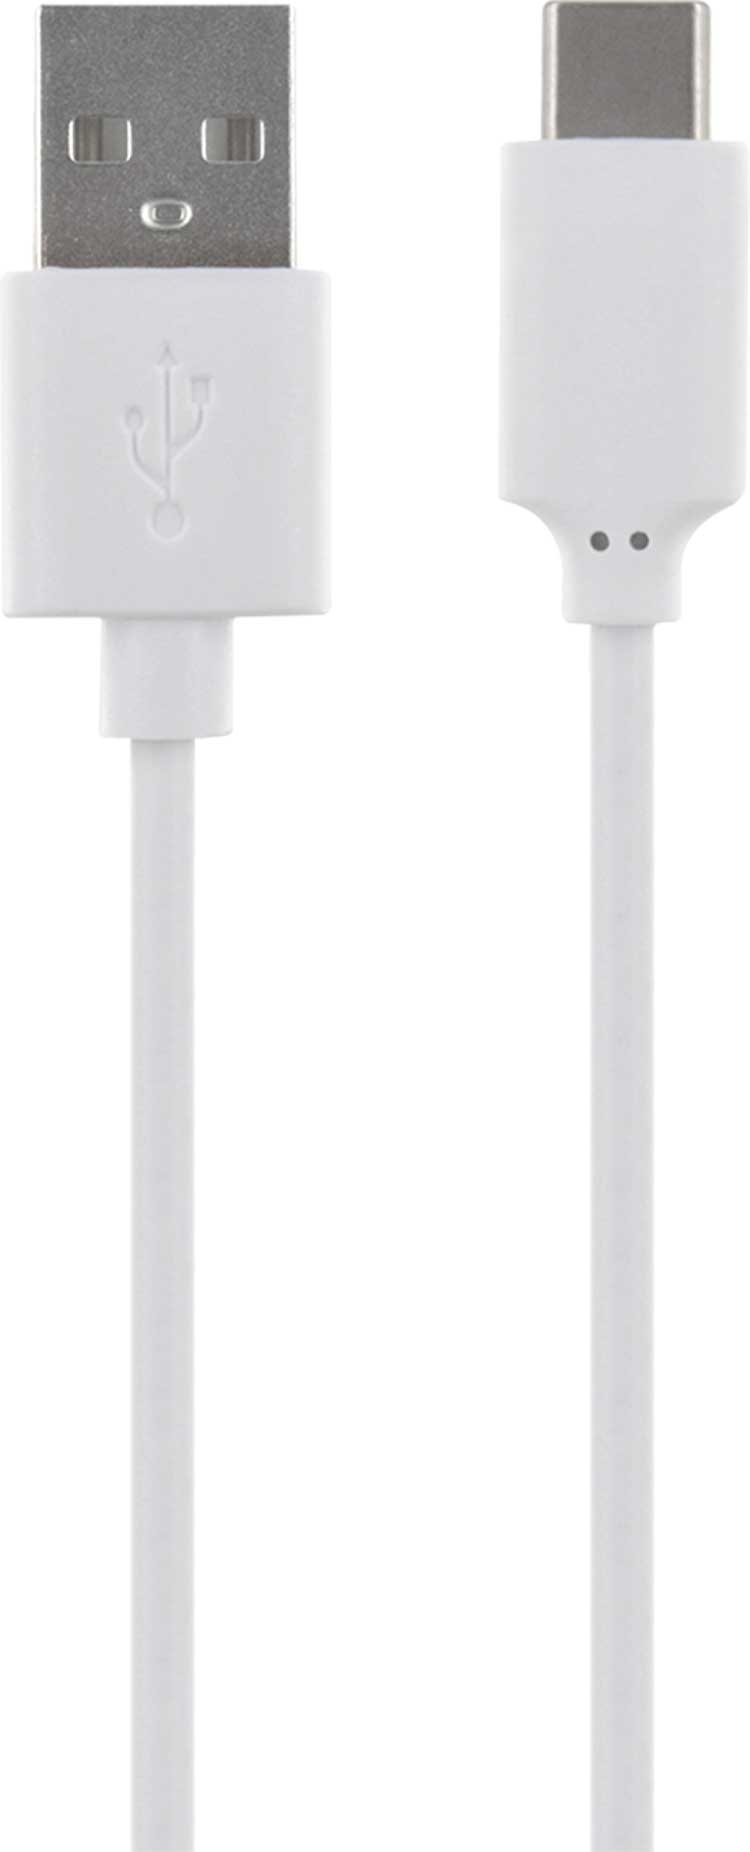 USB C/USB A and synchronisation adapters - Image